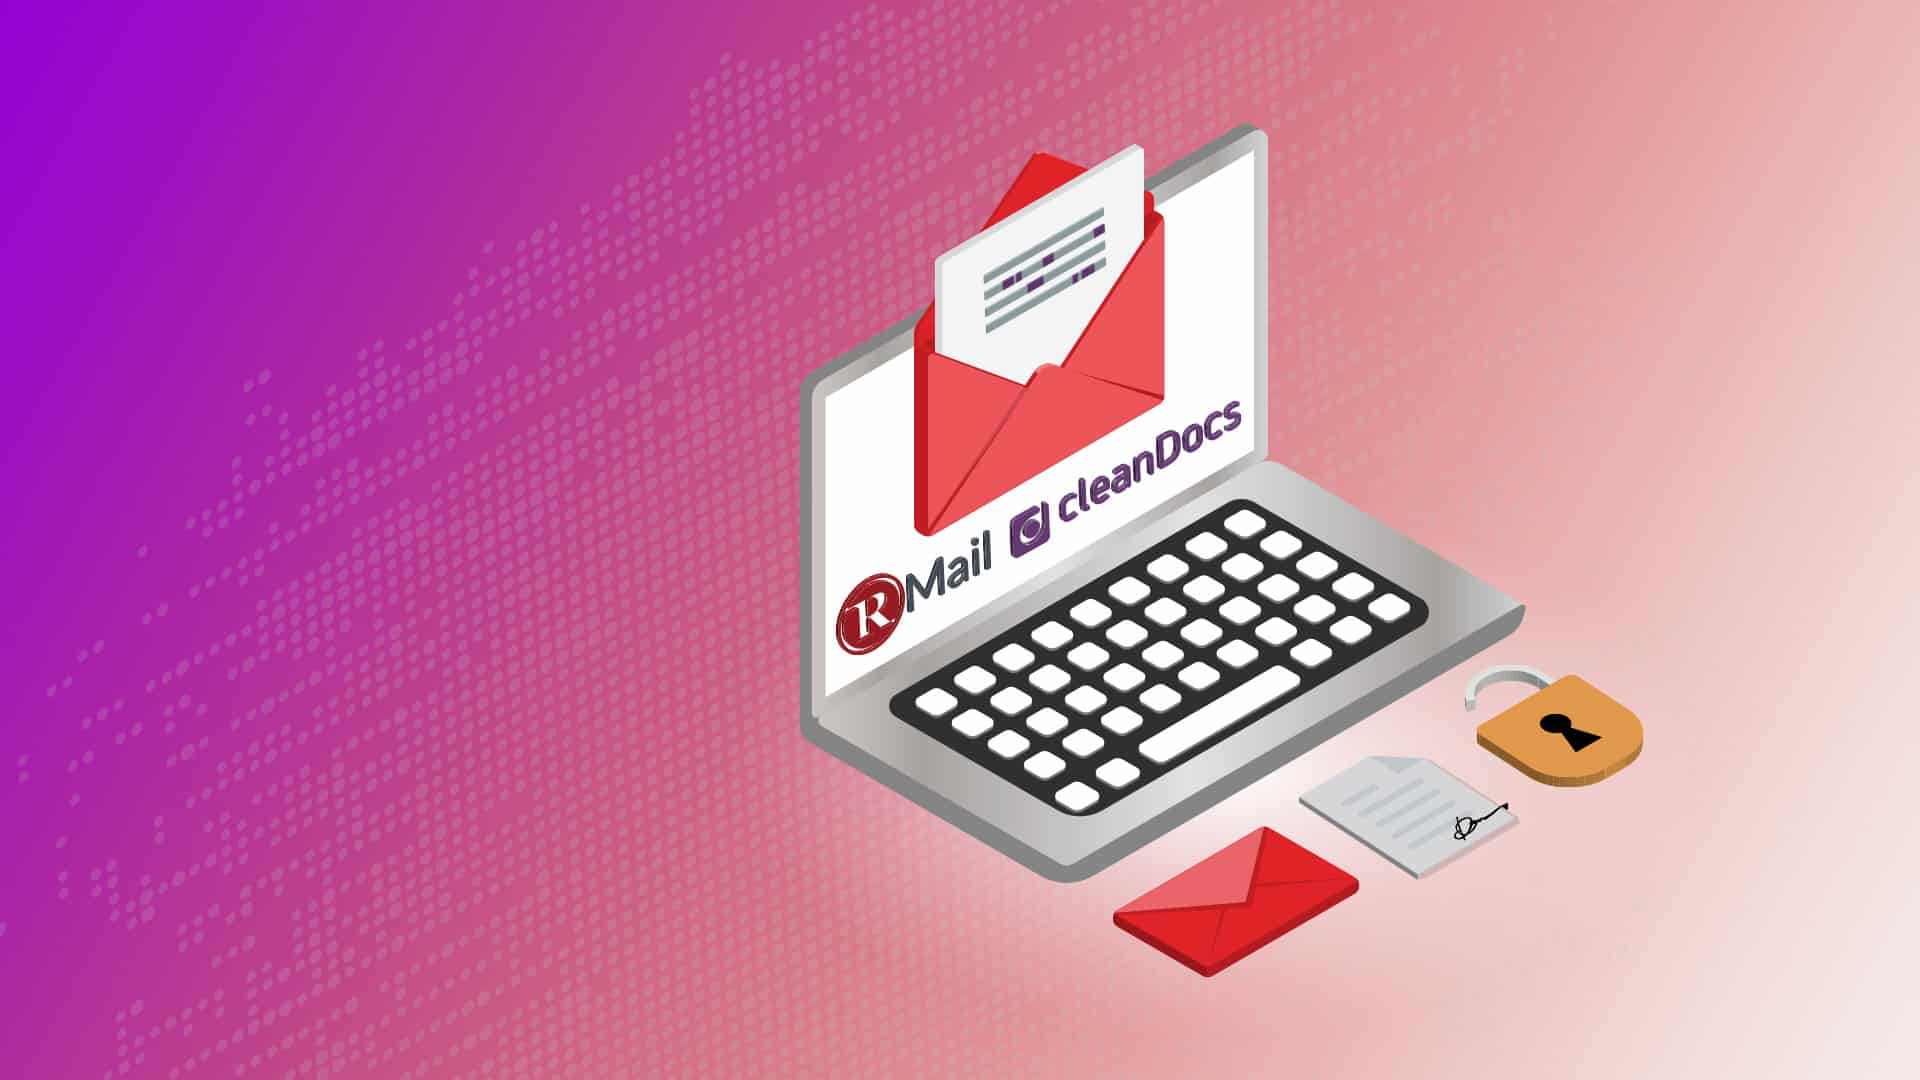 cleanDocs and RMail integration explained